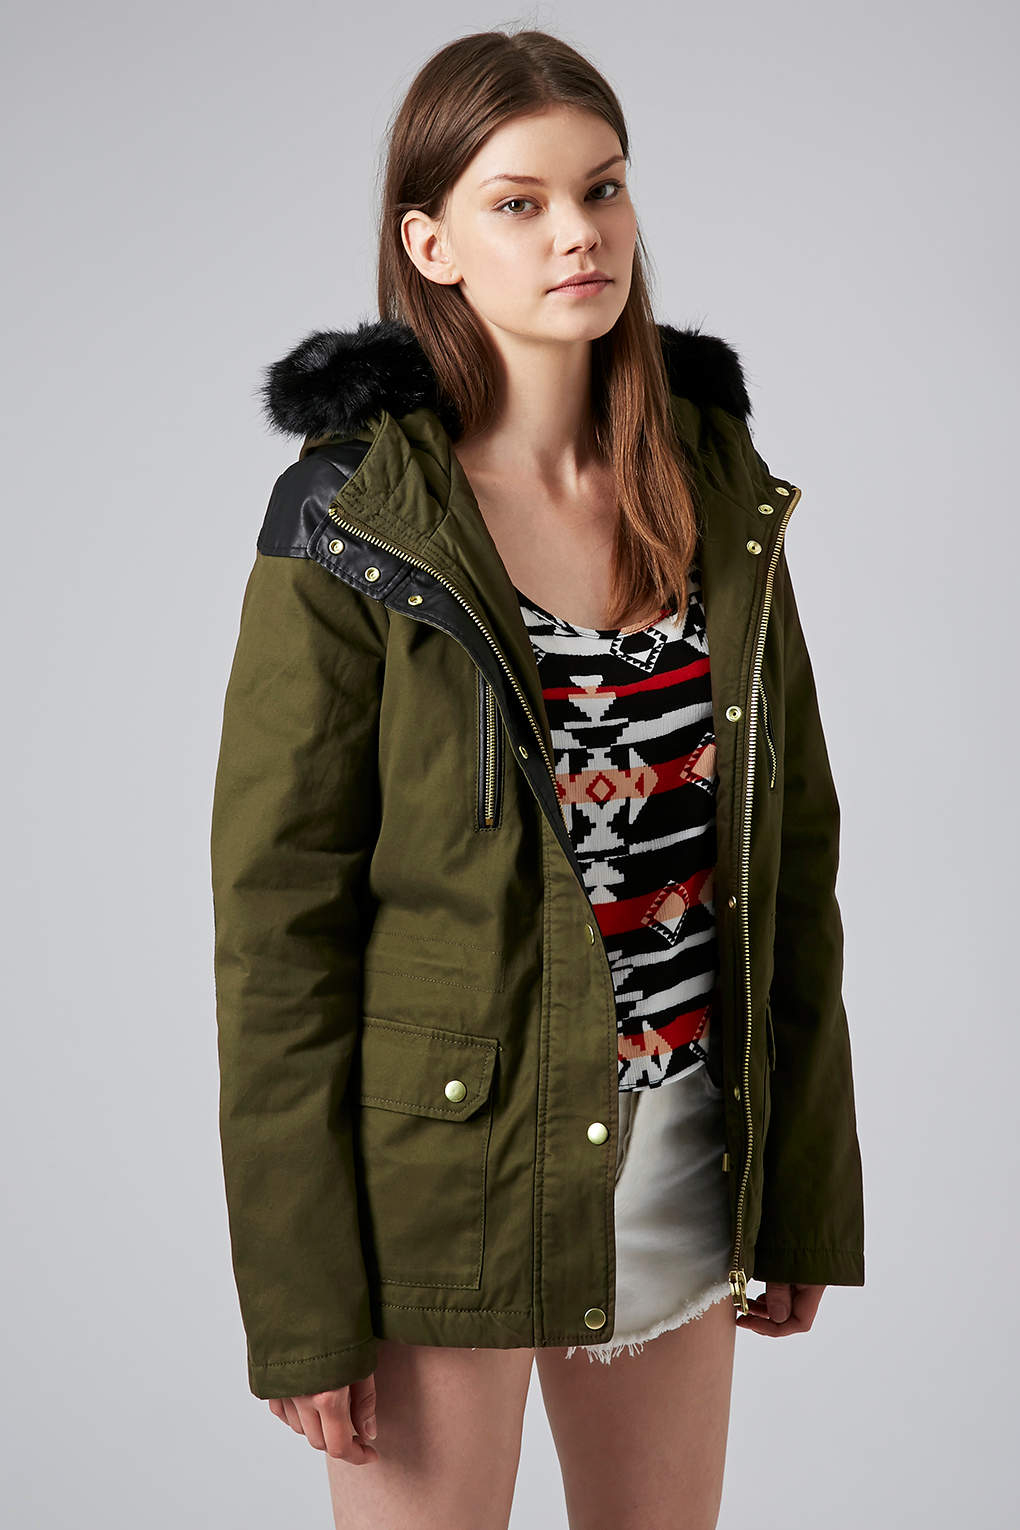 Short Parka Jacket - Coat Nj